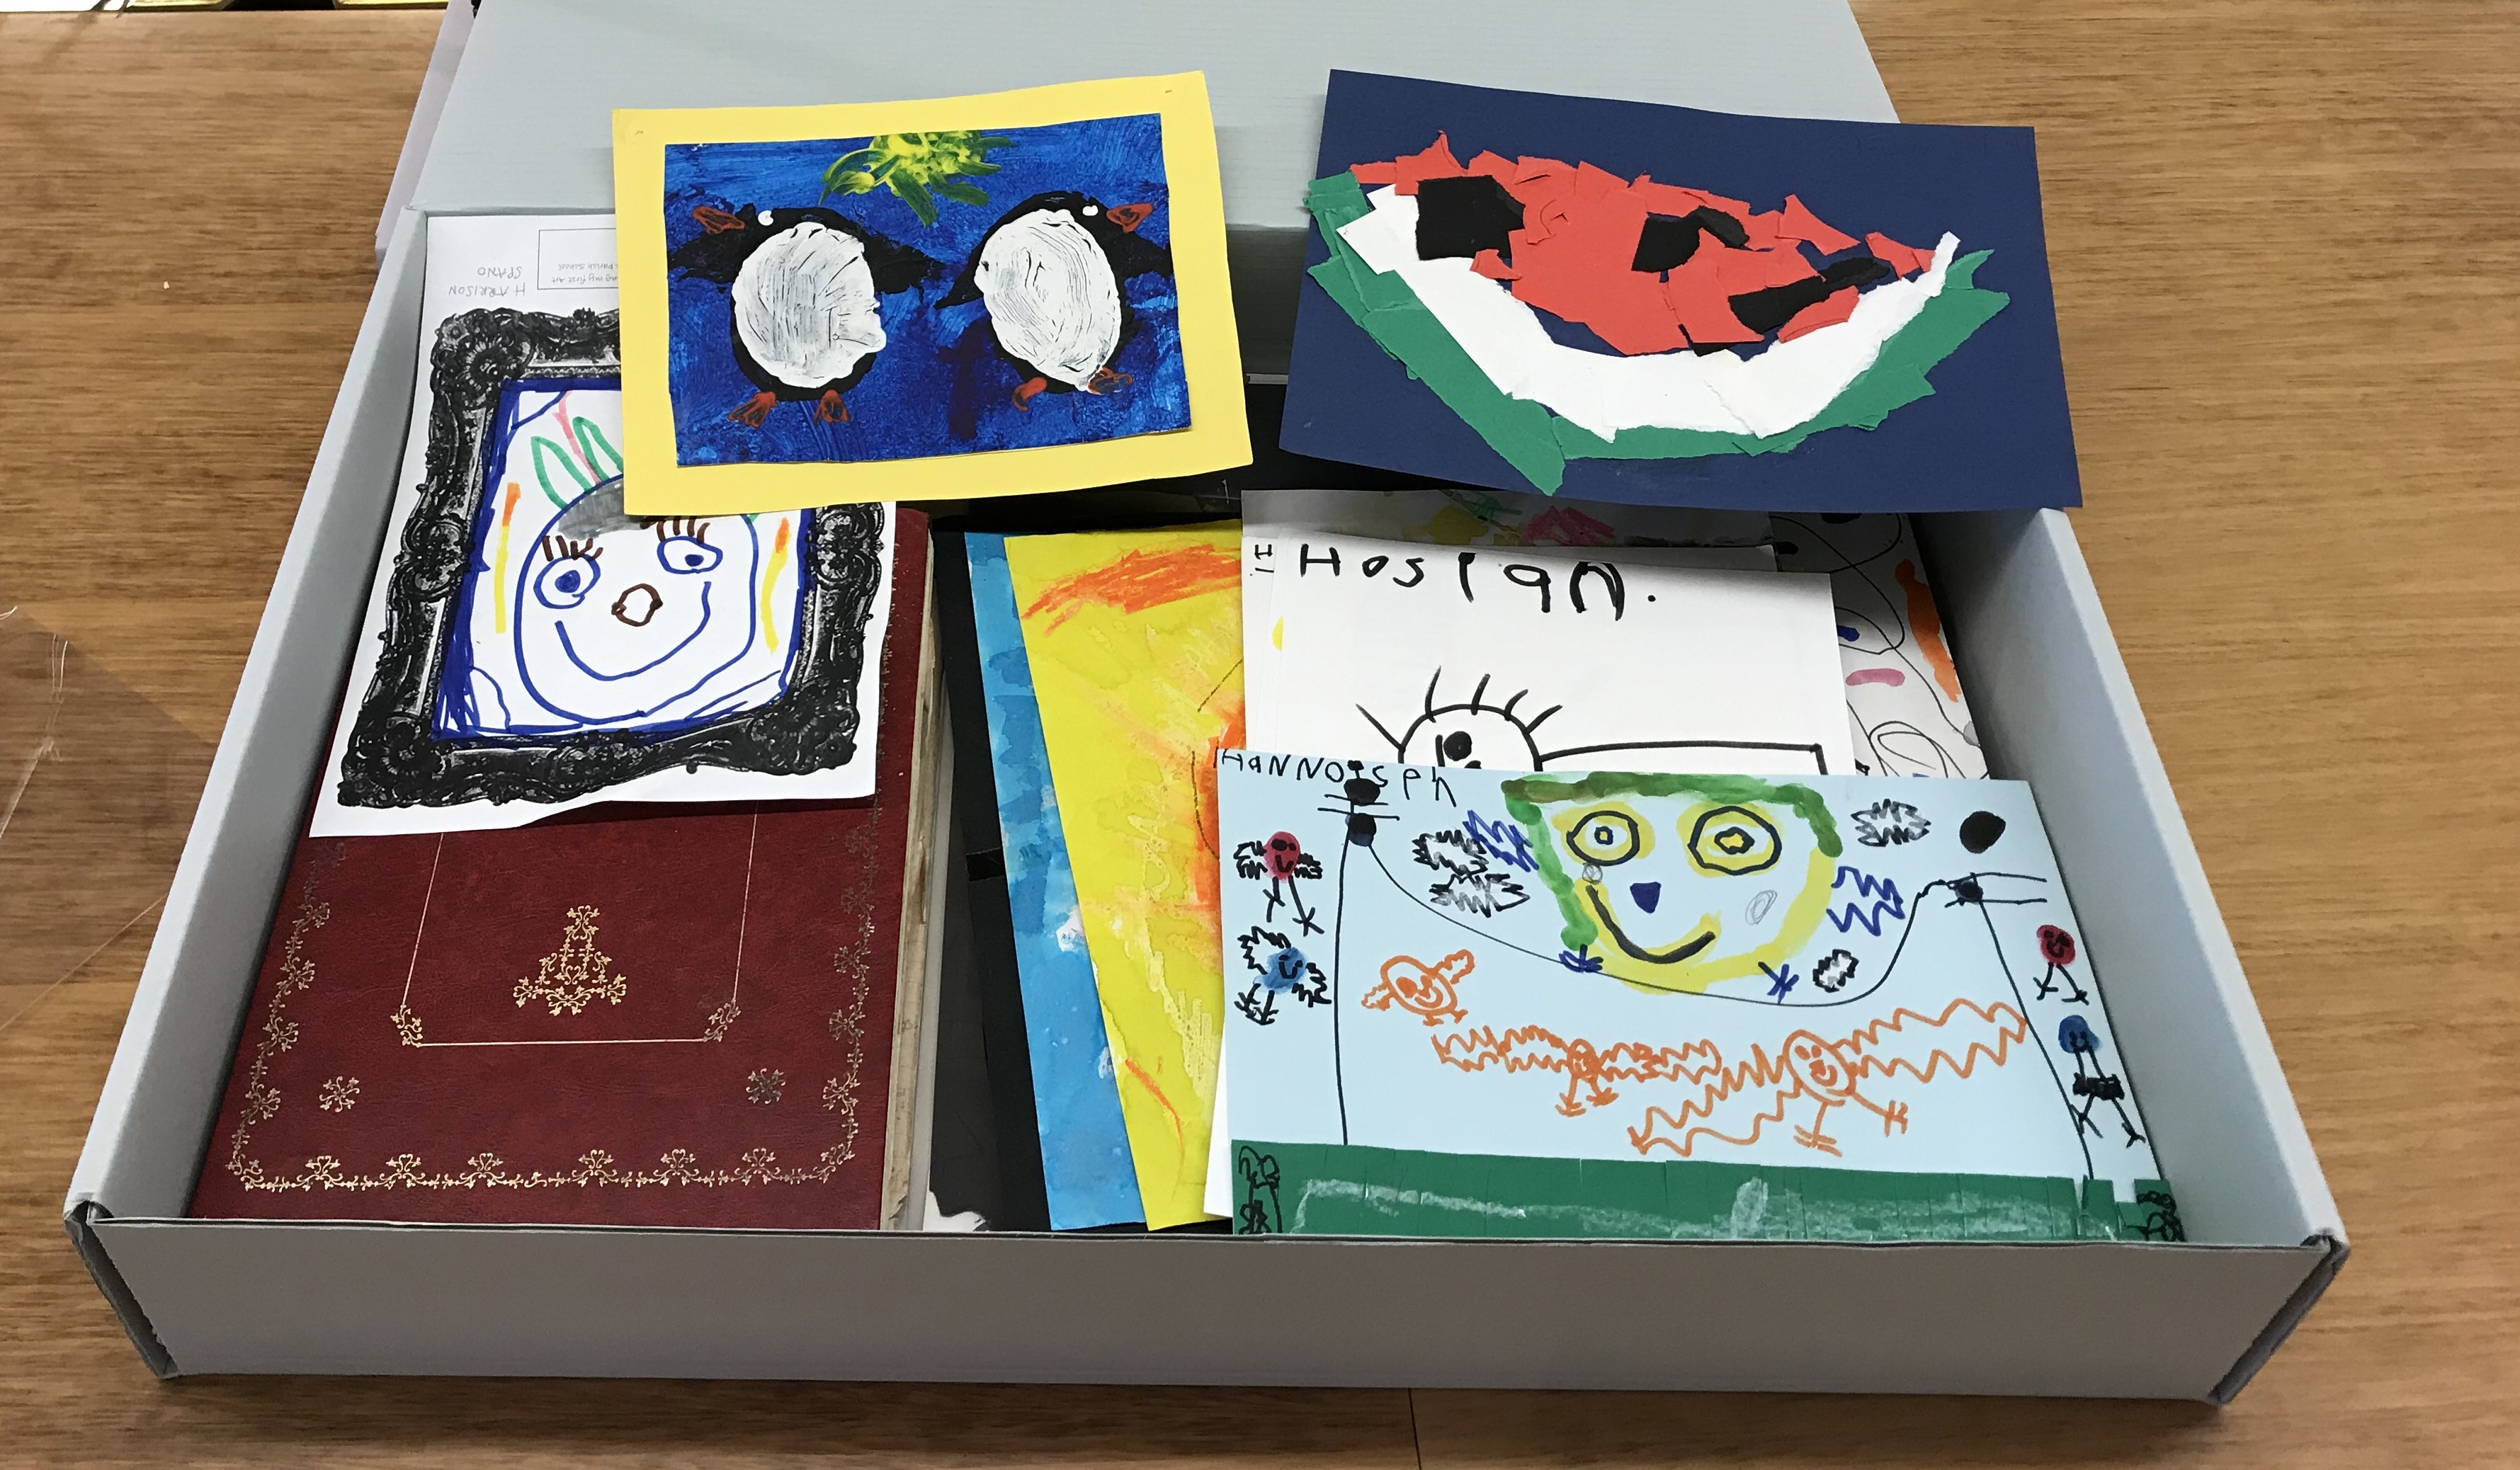 Childrens Artwork in storage box